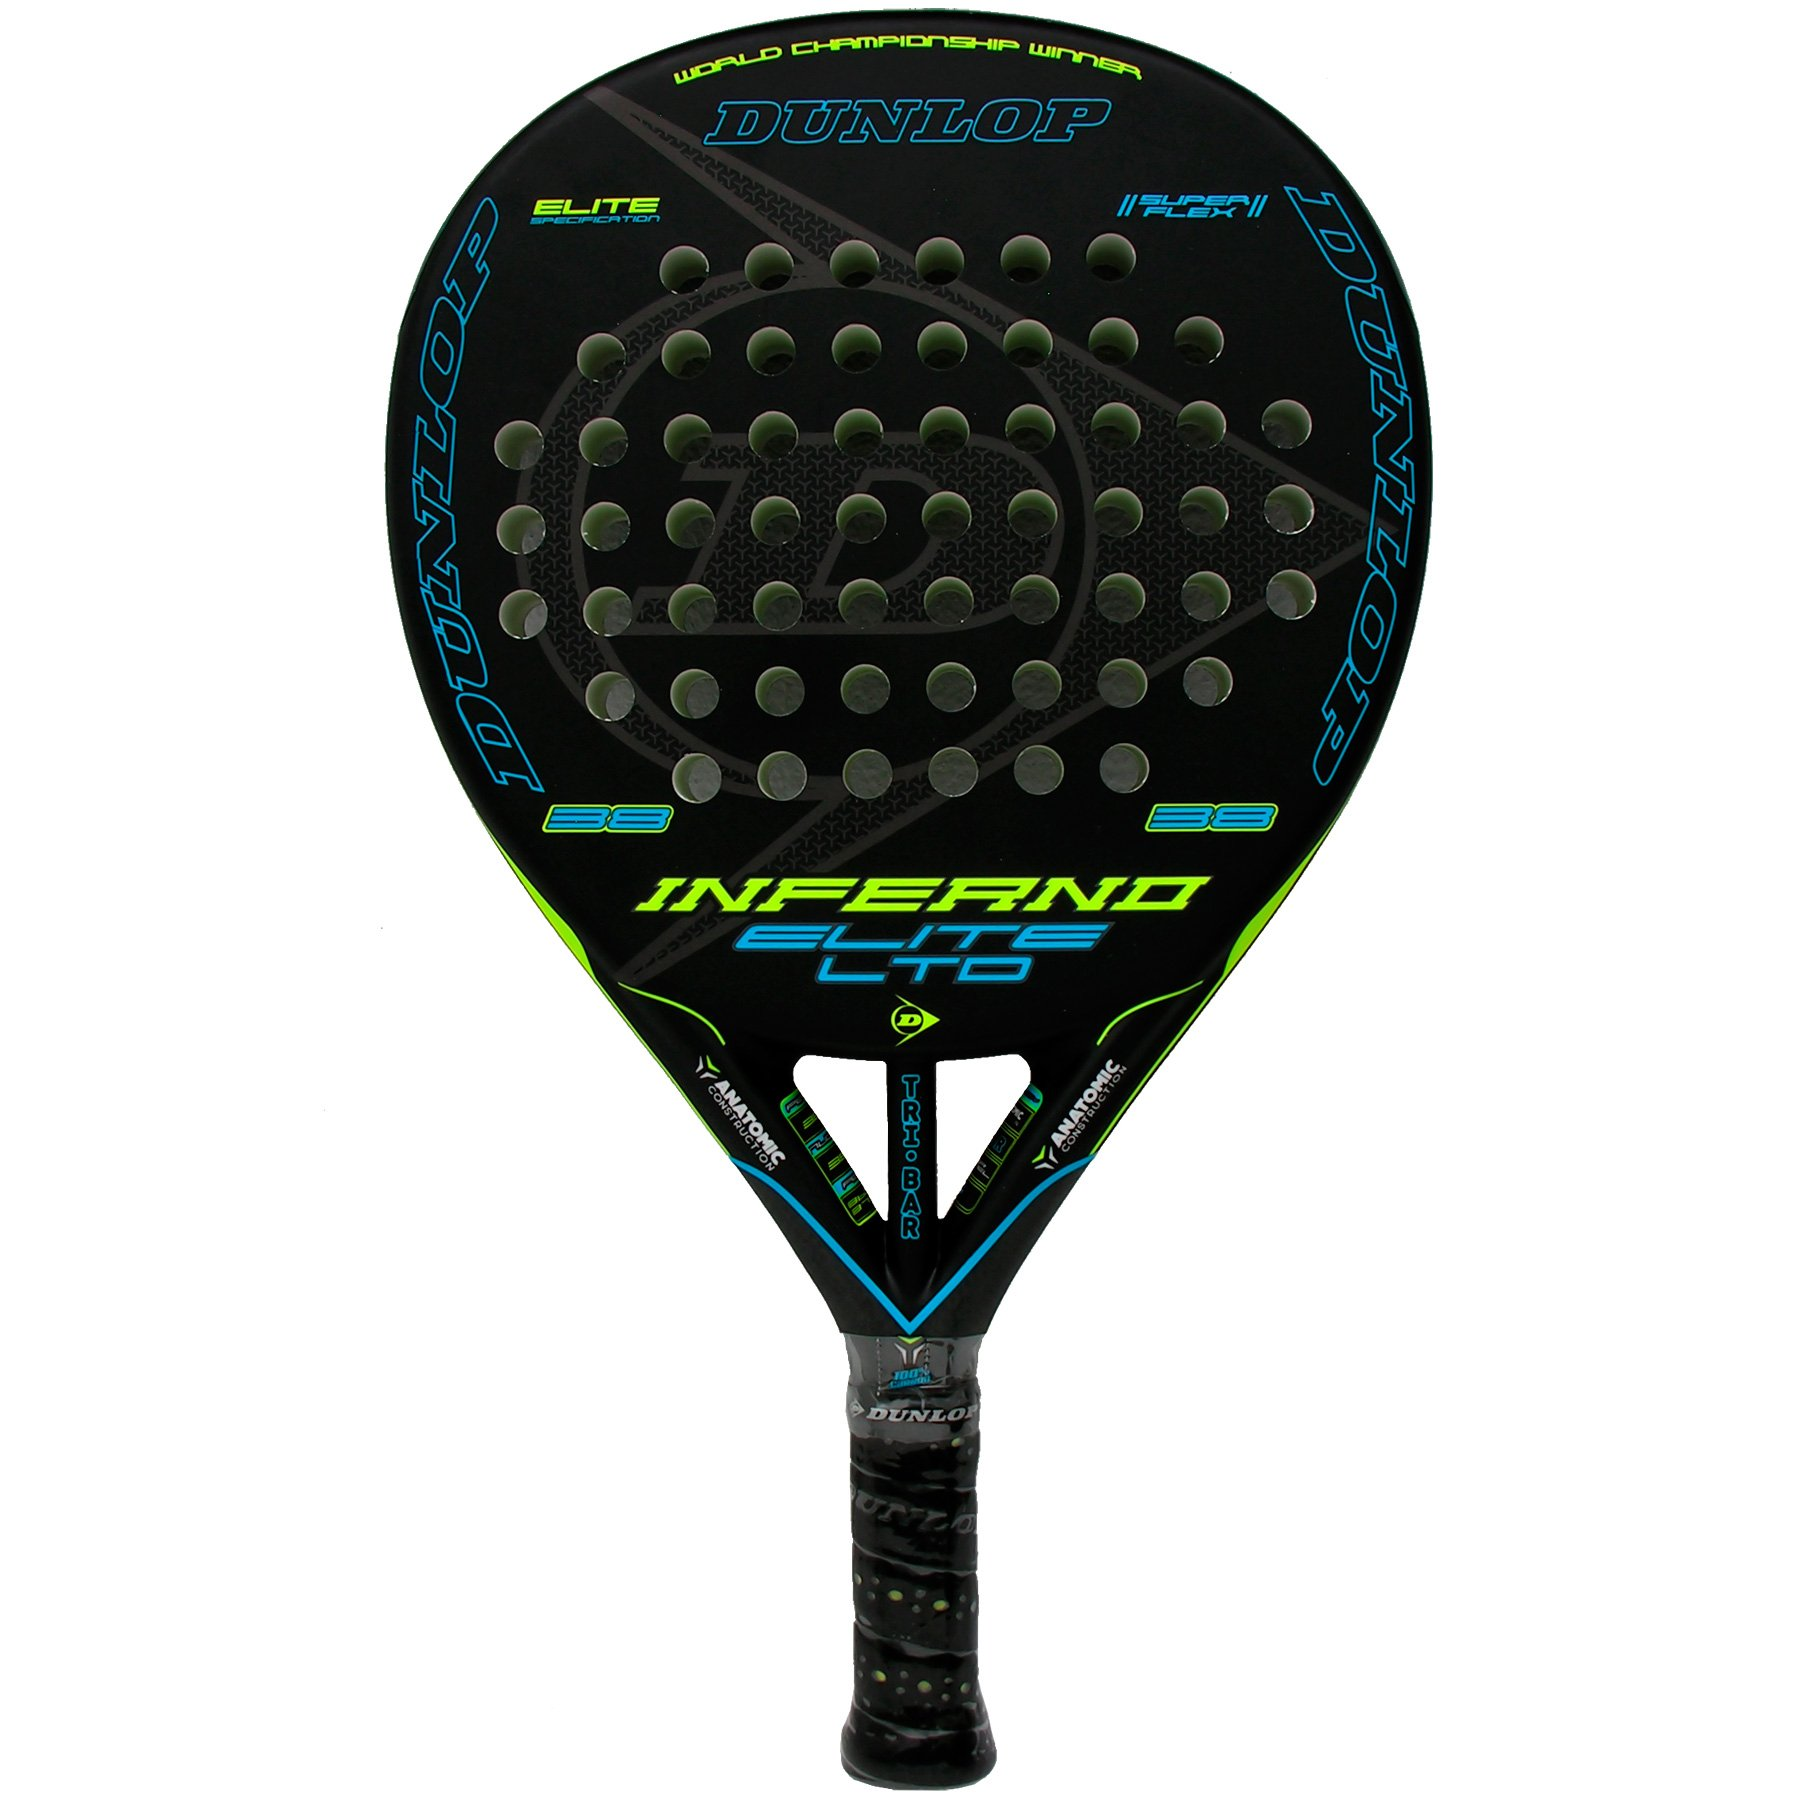 Pala de pádel Dunlop Inferno Elite LTD Yellow - Blue product image